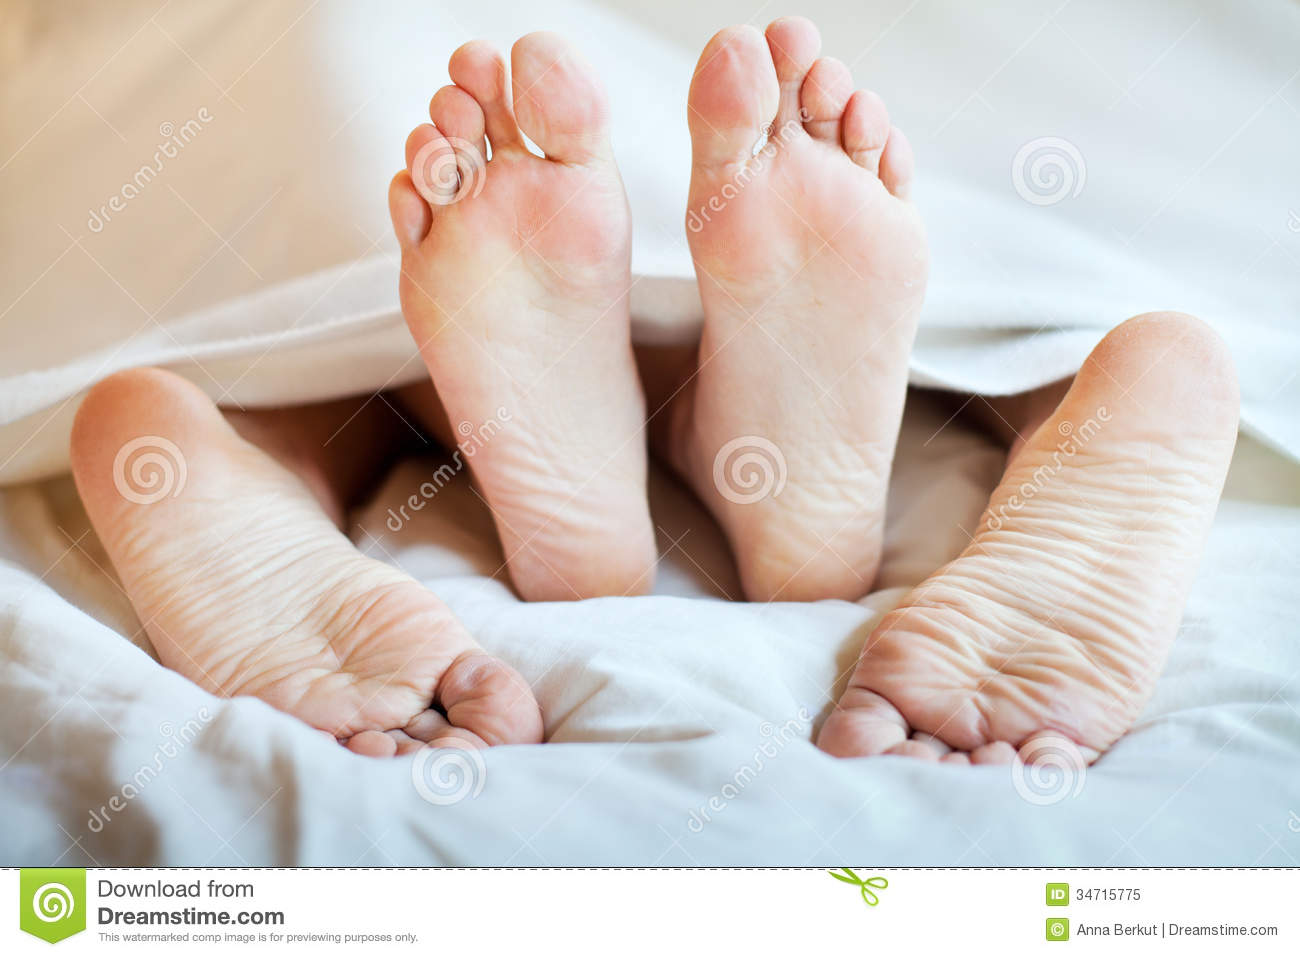 How To Make Feet Area Of Bed Hot